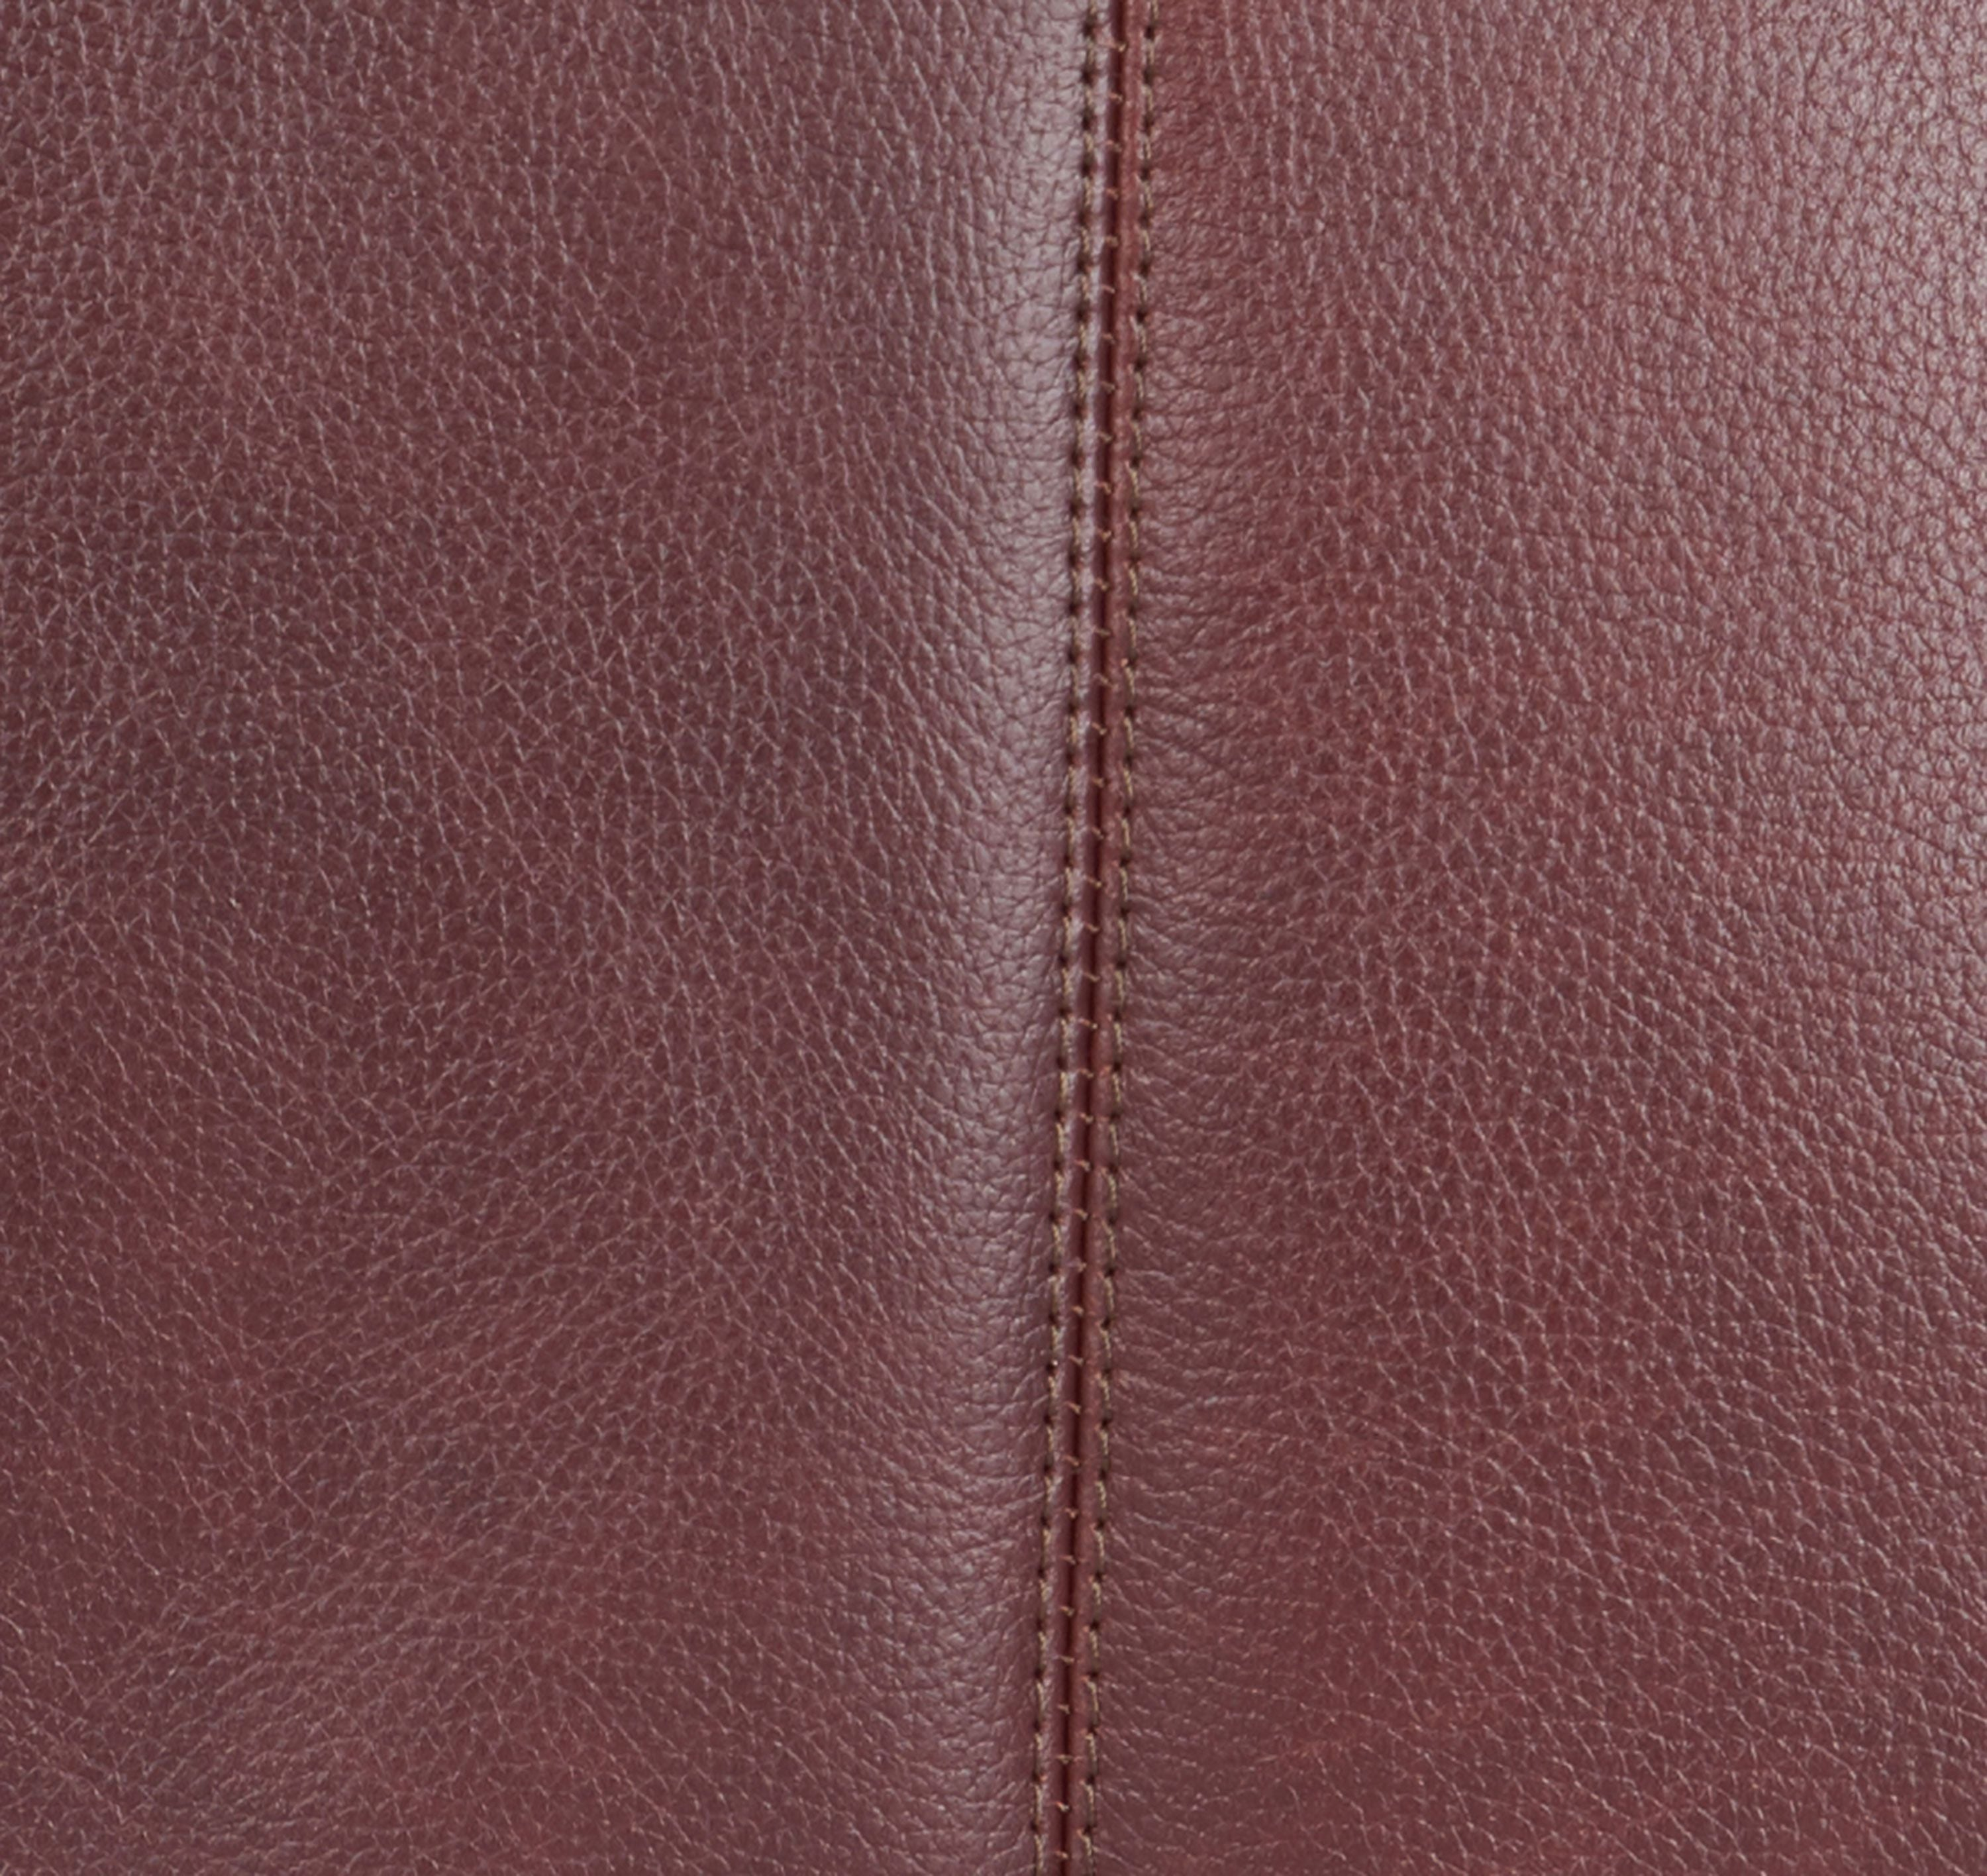 Barbour Leather Briefcase_07_Uba0011_Dk Brown